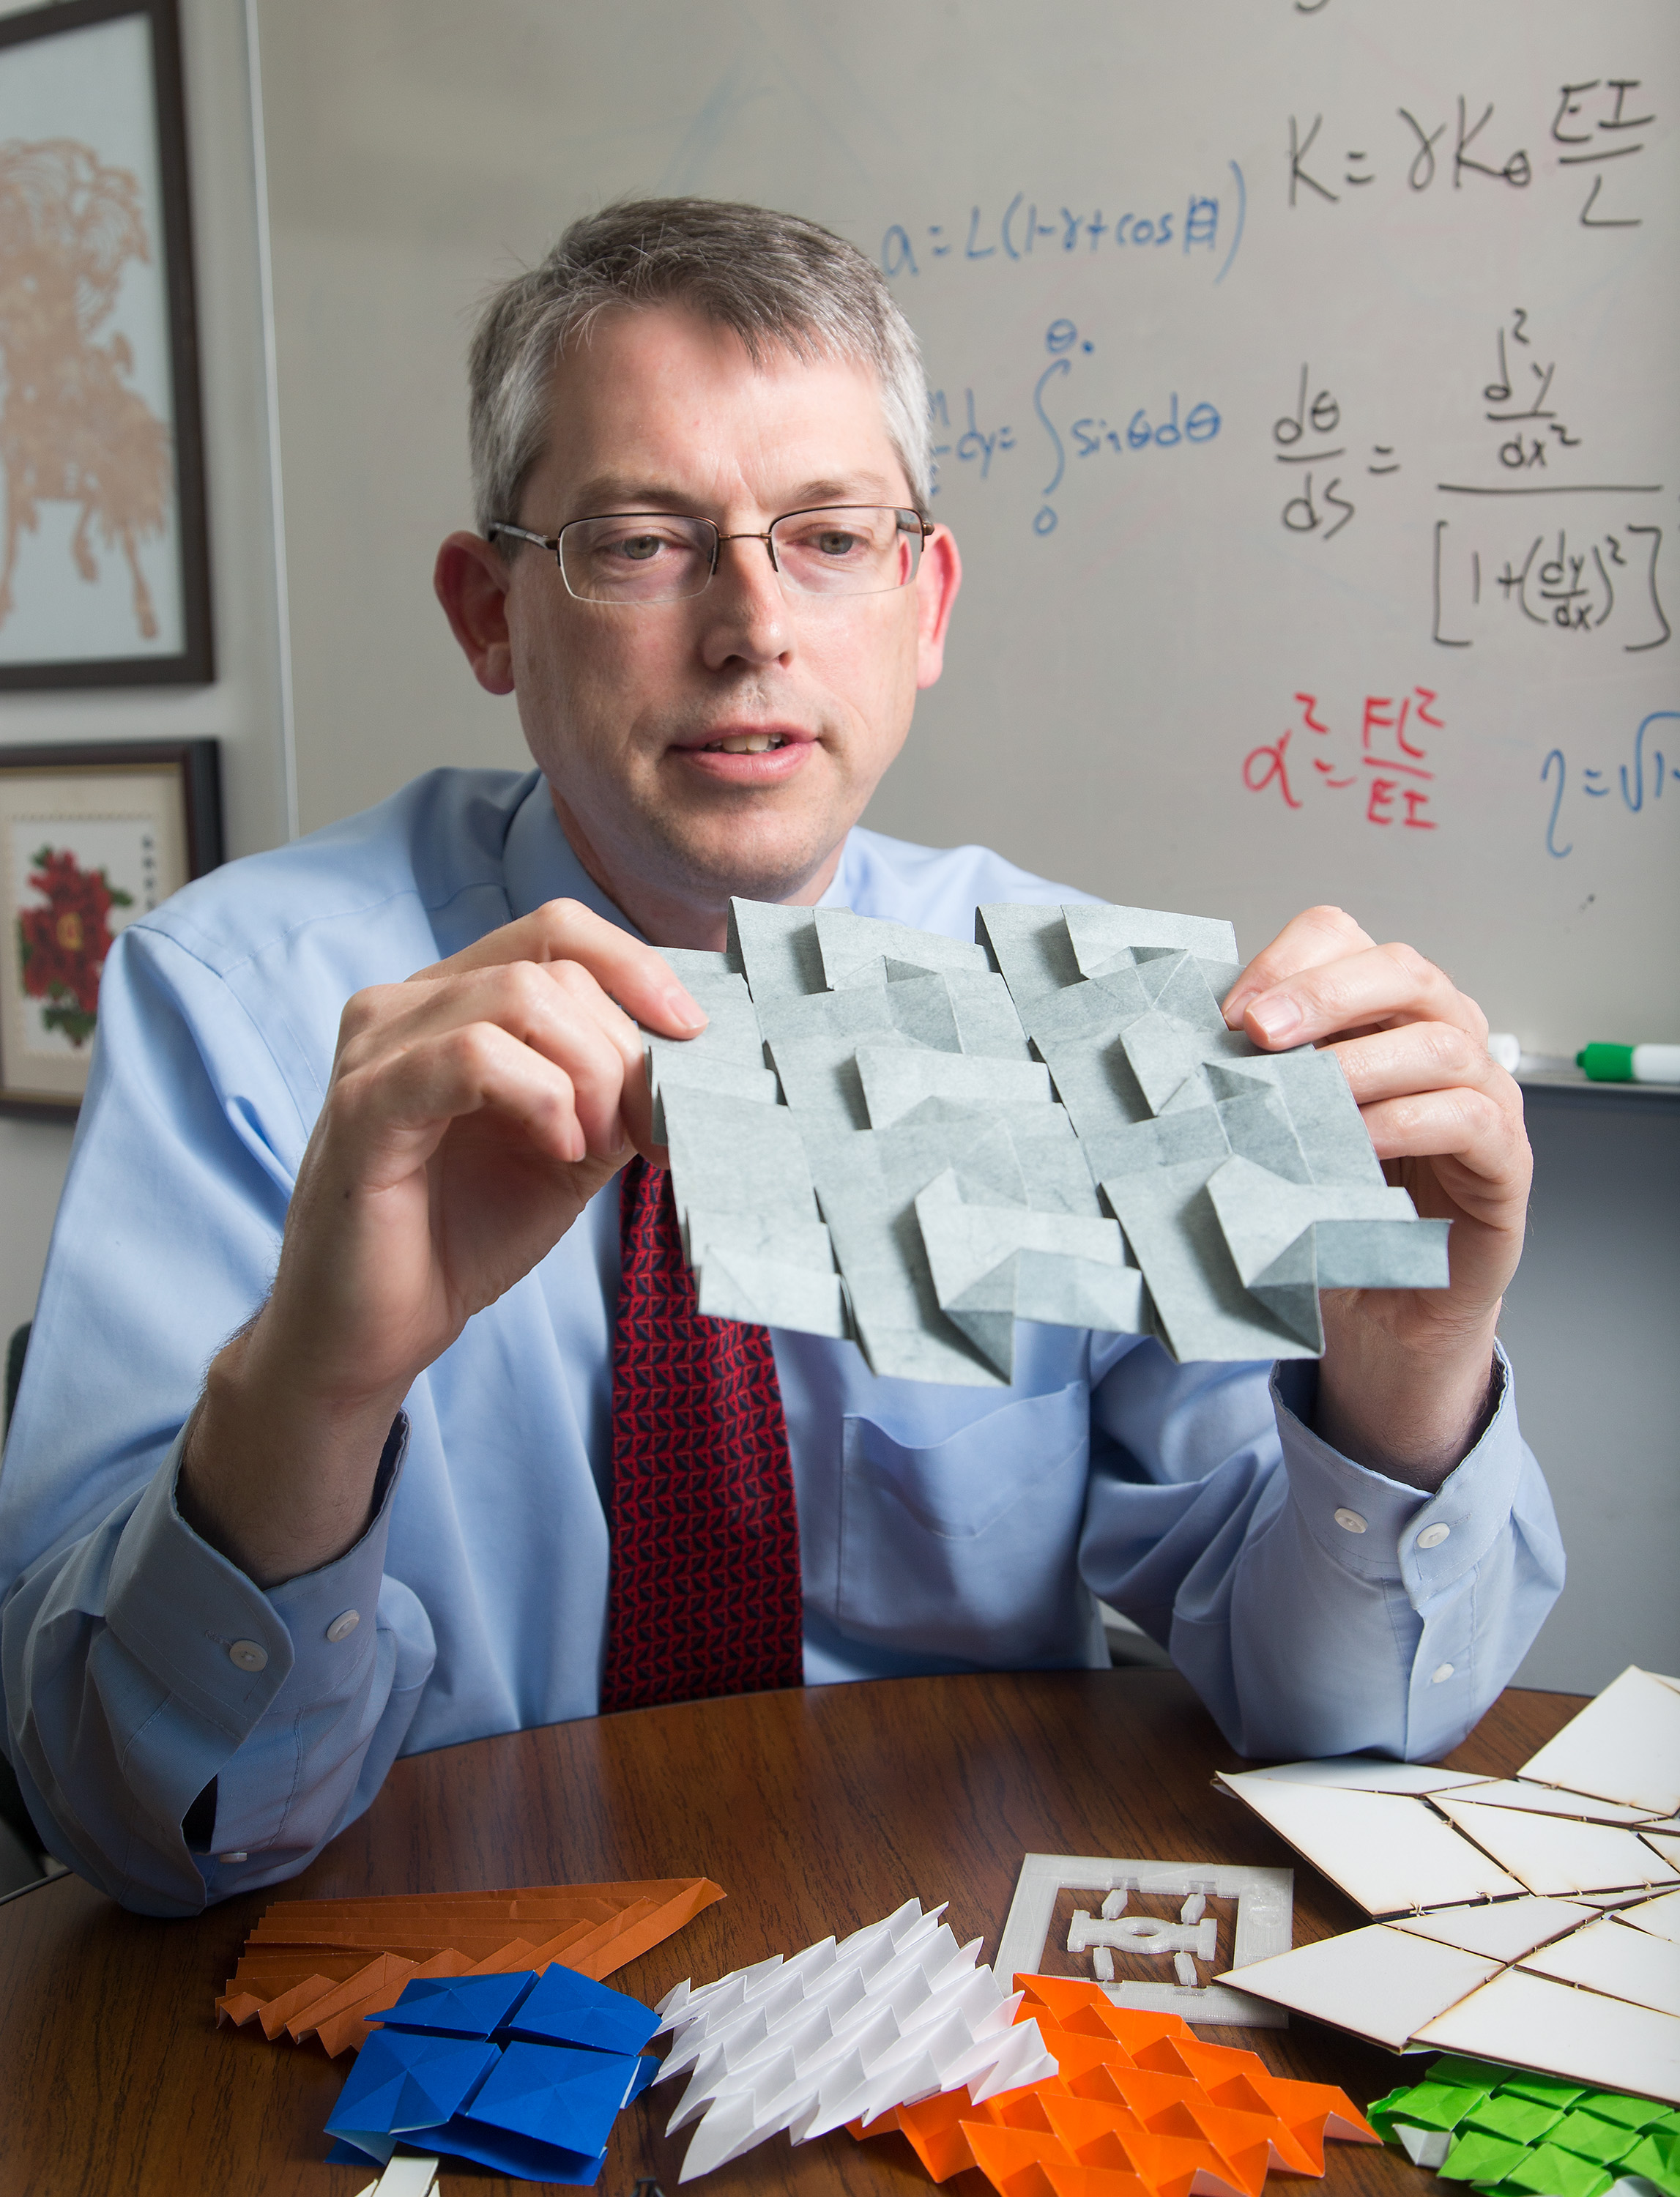 mechanical engineering professor larry howell and a team of researchers from byu and nasa are using origami to create space equipment - Astronomy Jobs At Nasa